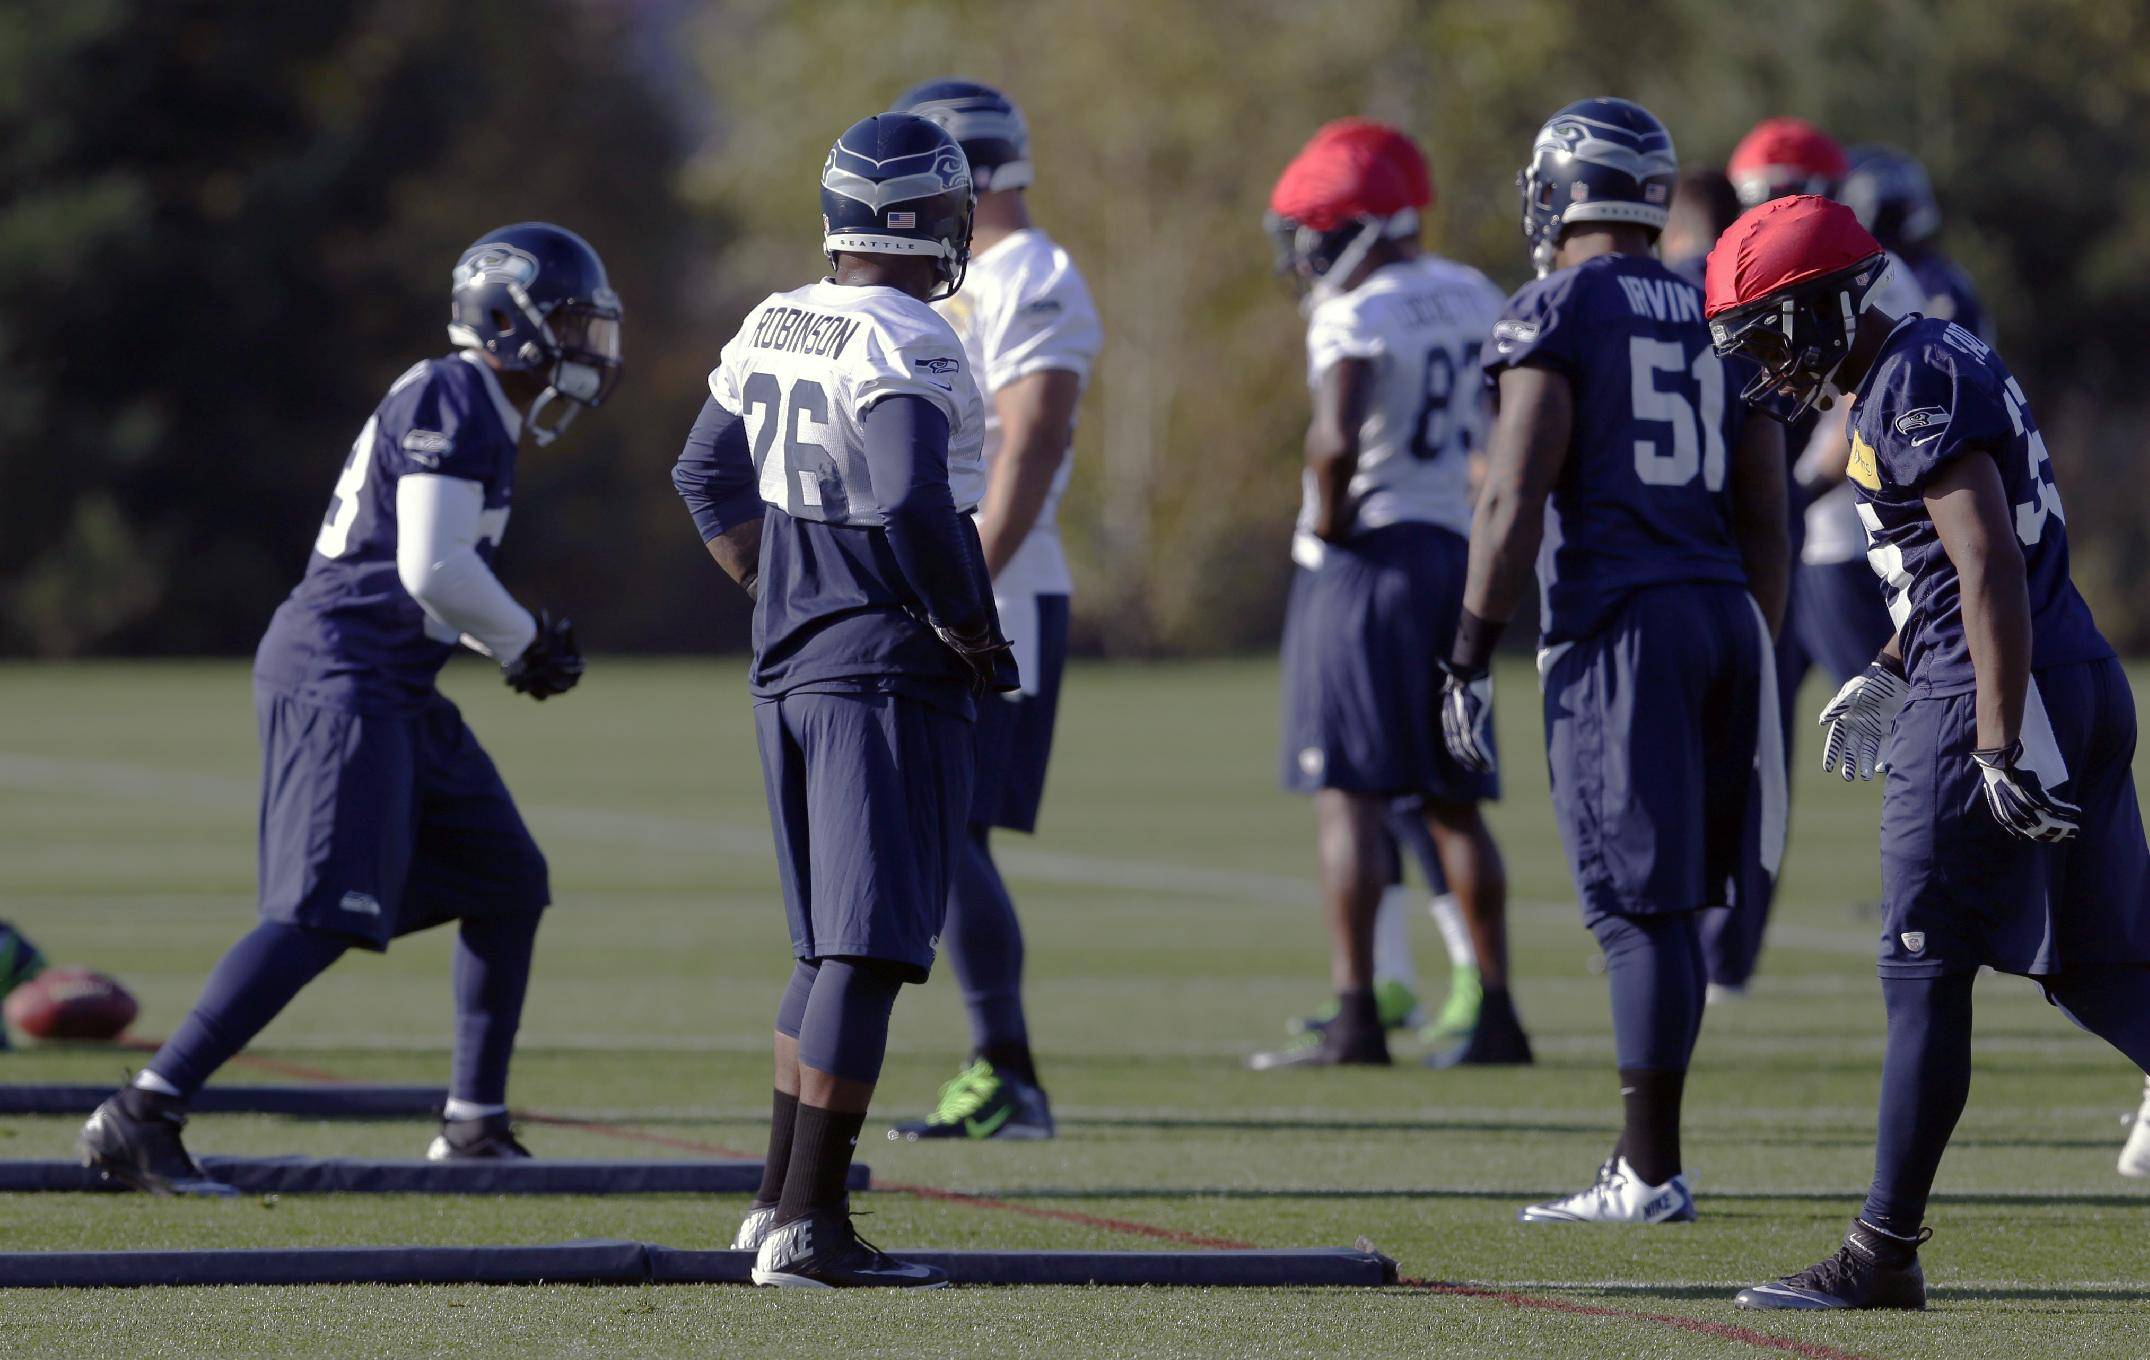 Seattle Seahawks fullback Michael Robinson (26) takes part in an NFL football practice, Tuesday, Oct. 22, 2013, in Renton, Wash